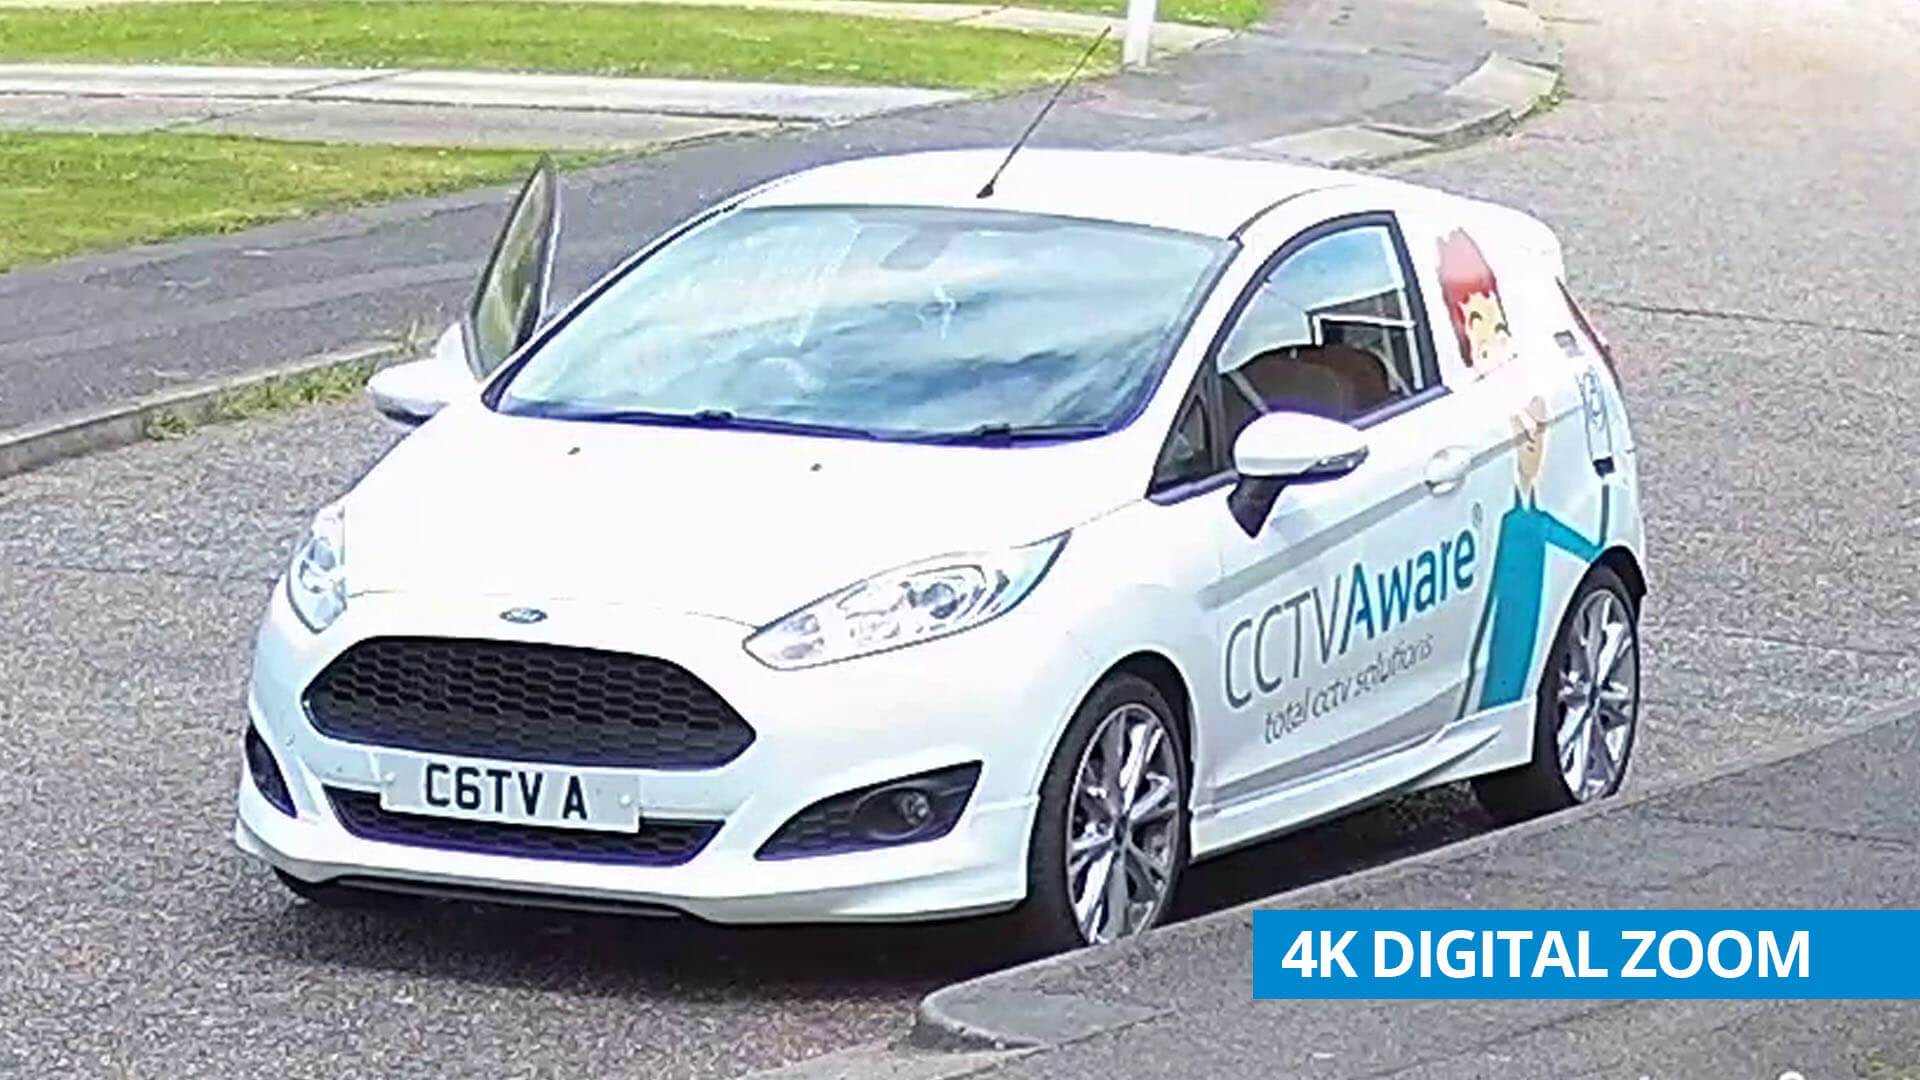 4K CAR REG EXAMPLE (OVERLAY)